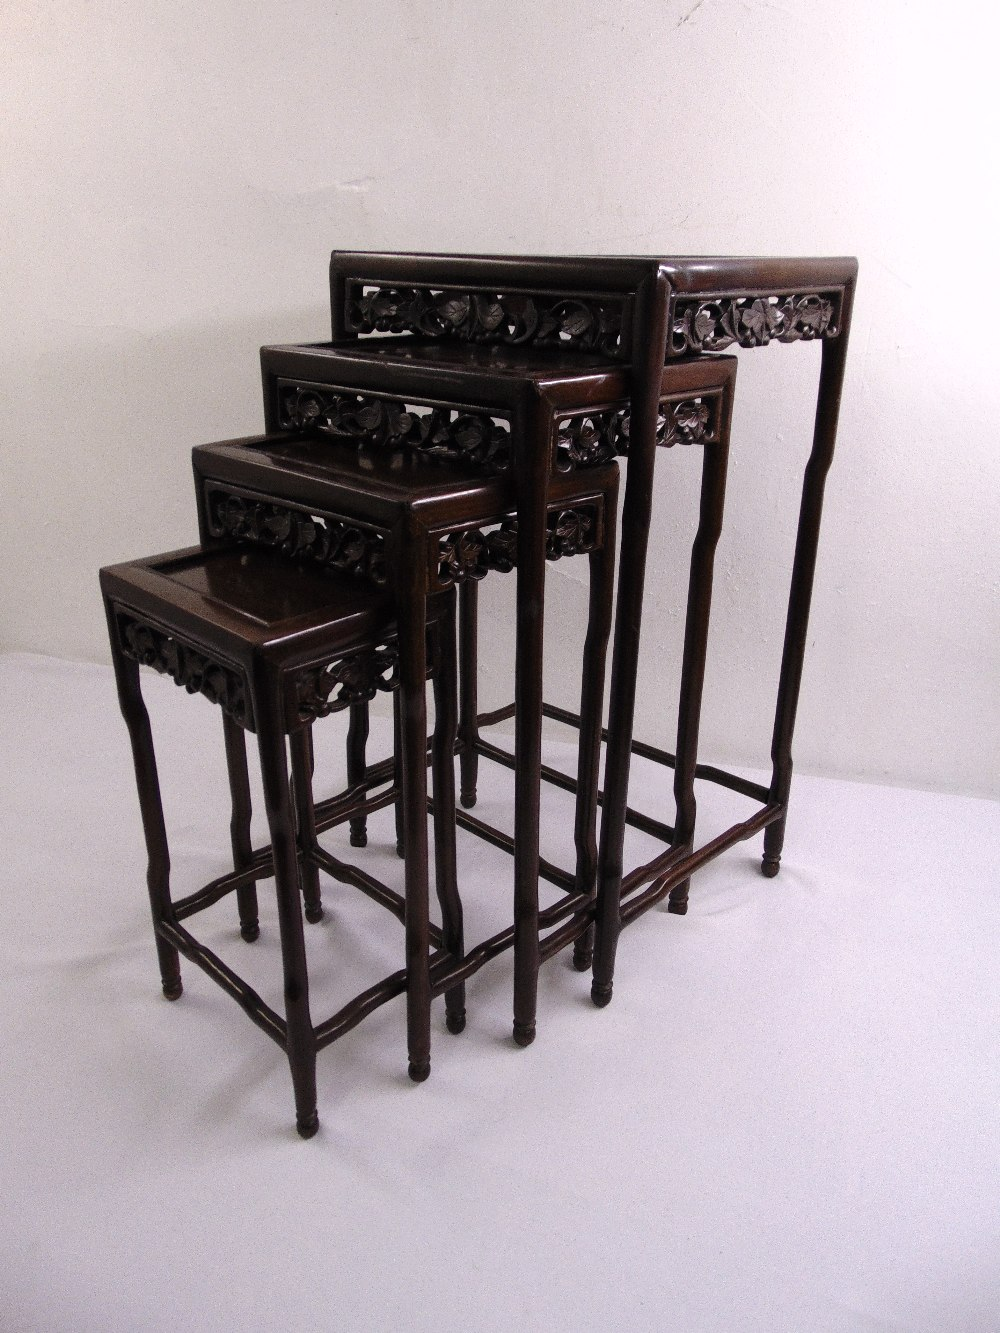 Lot 16 - A 20th century quartetto of Chinese hardwood nesting tables, each of rectangular form with foliate